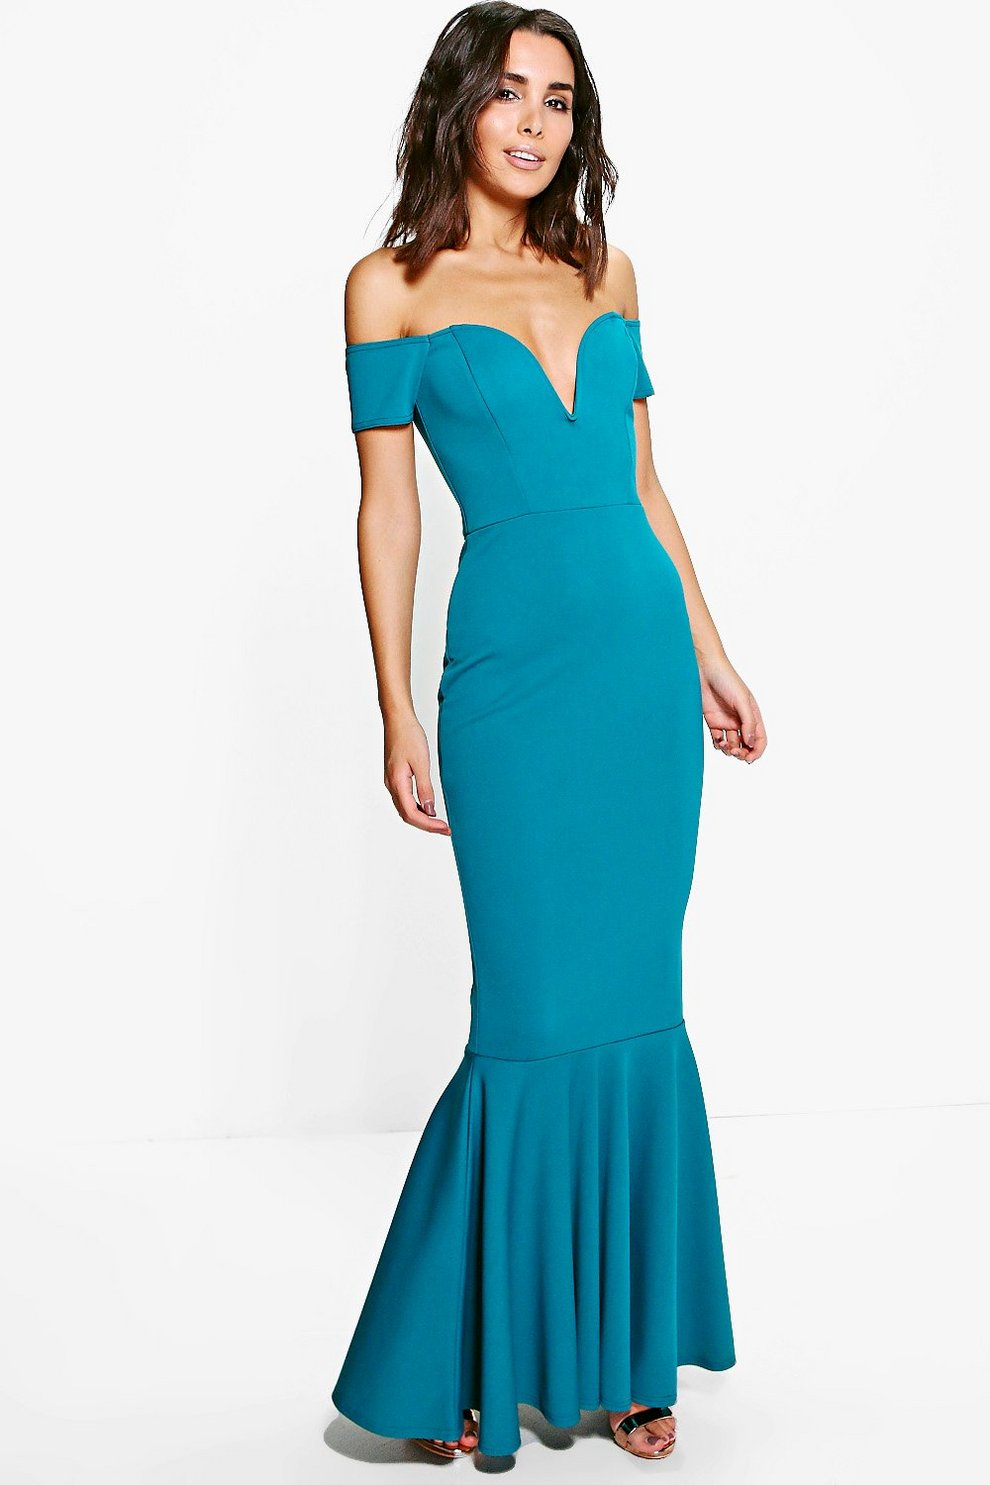 65741a6ff5bb Marlin Off The Shoulder Fish Tail Maxi Dress | Boohoo